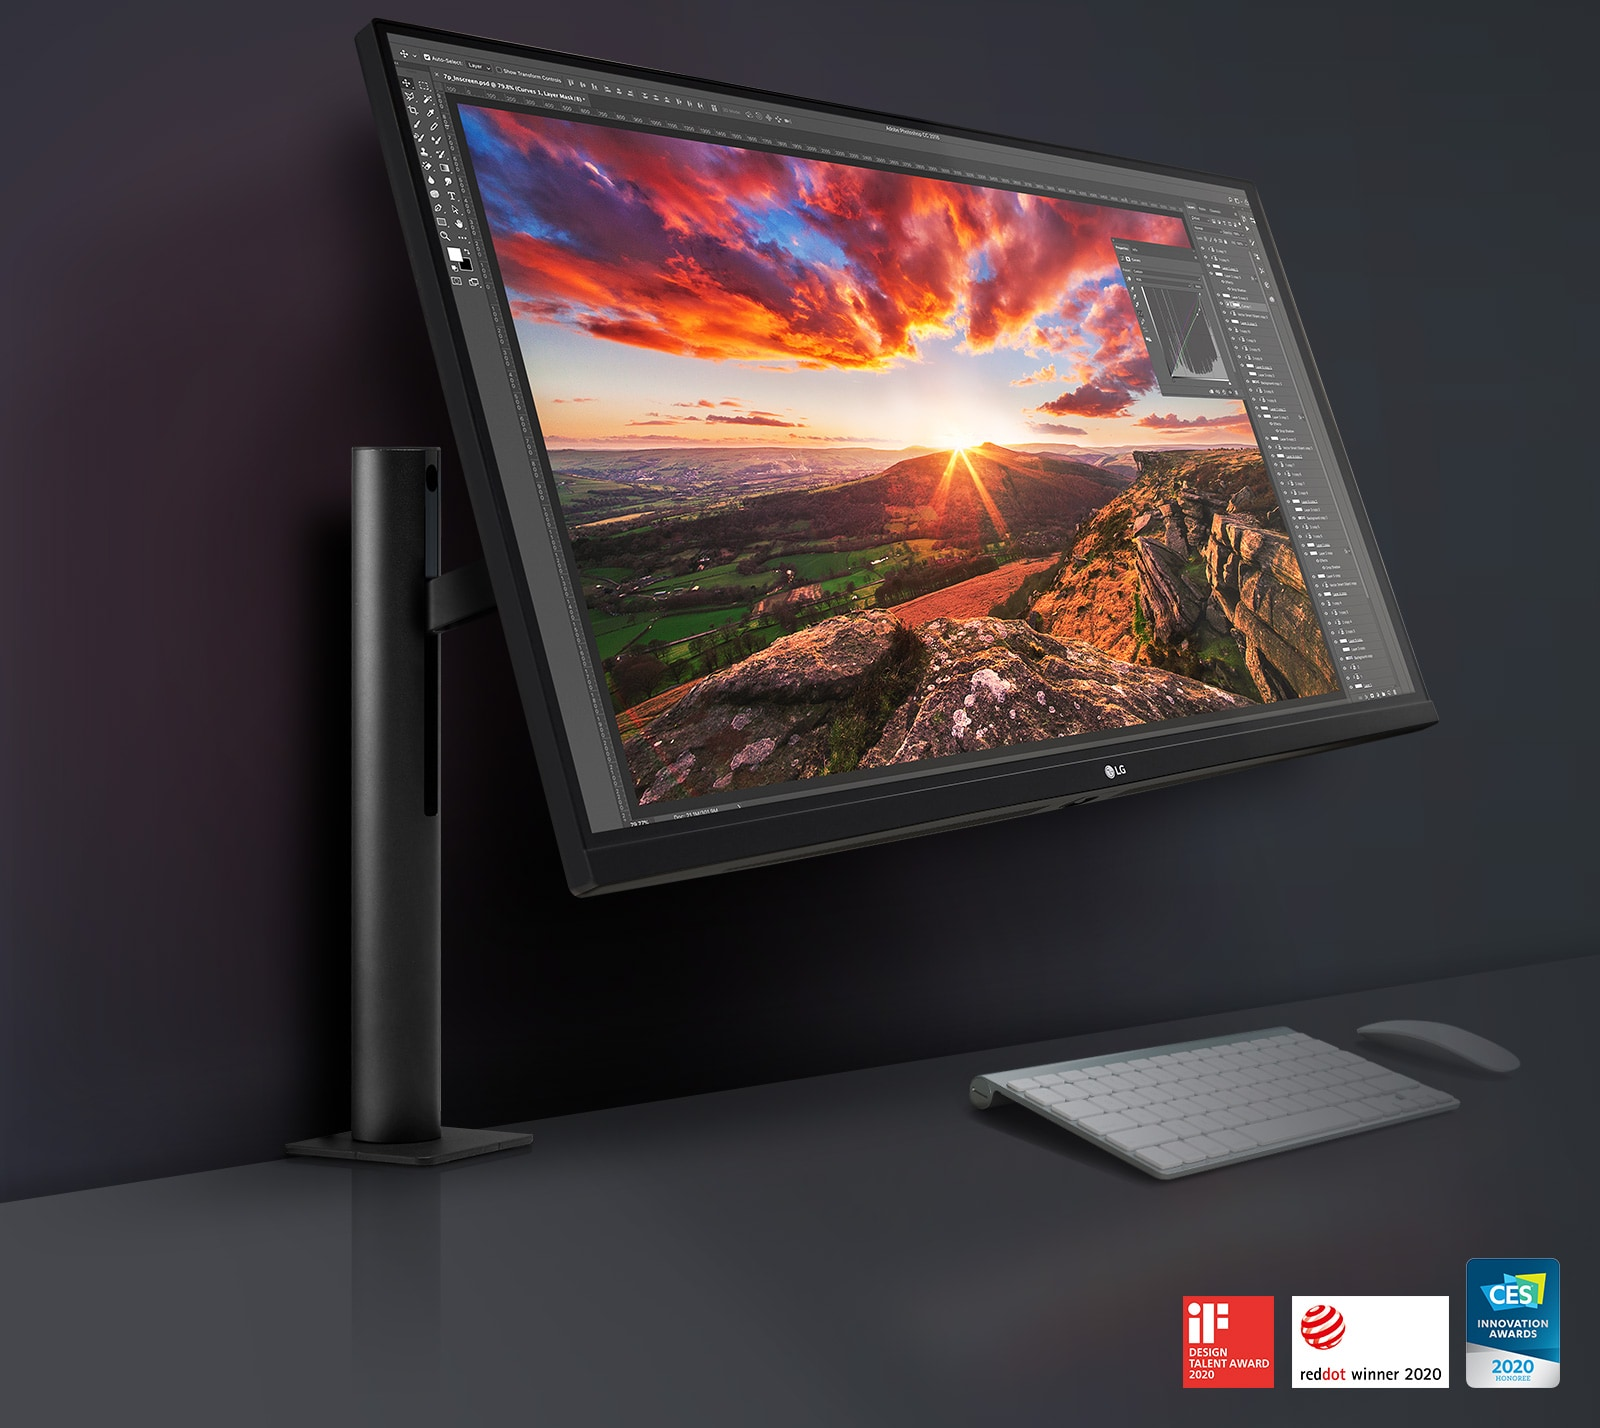 LG UltraFine ™ Ergo monitor: a design tailored for you